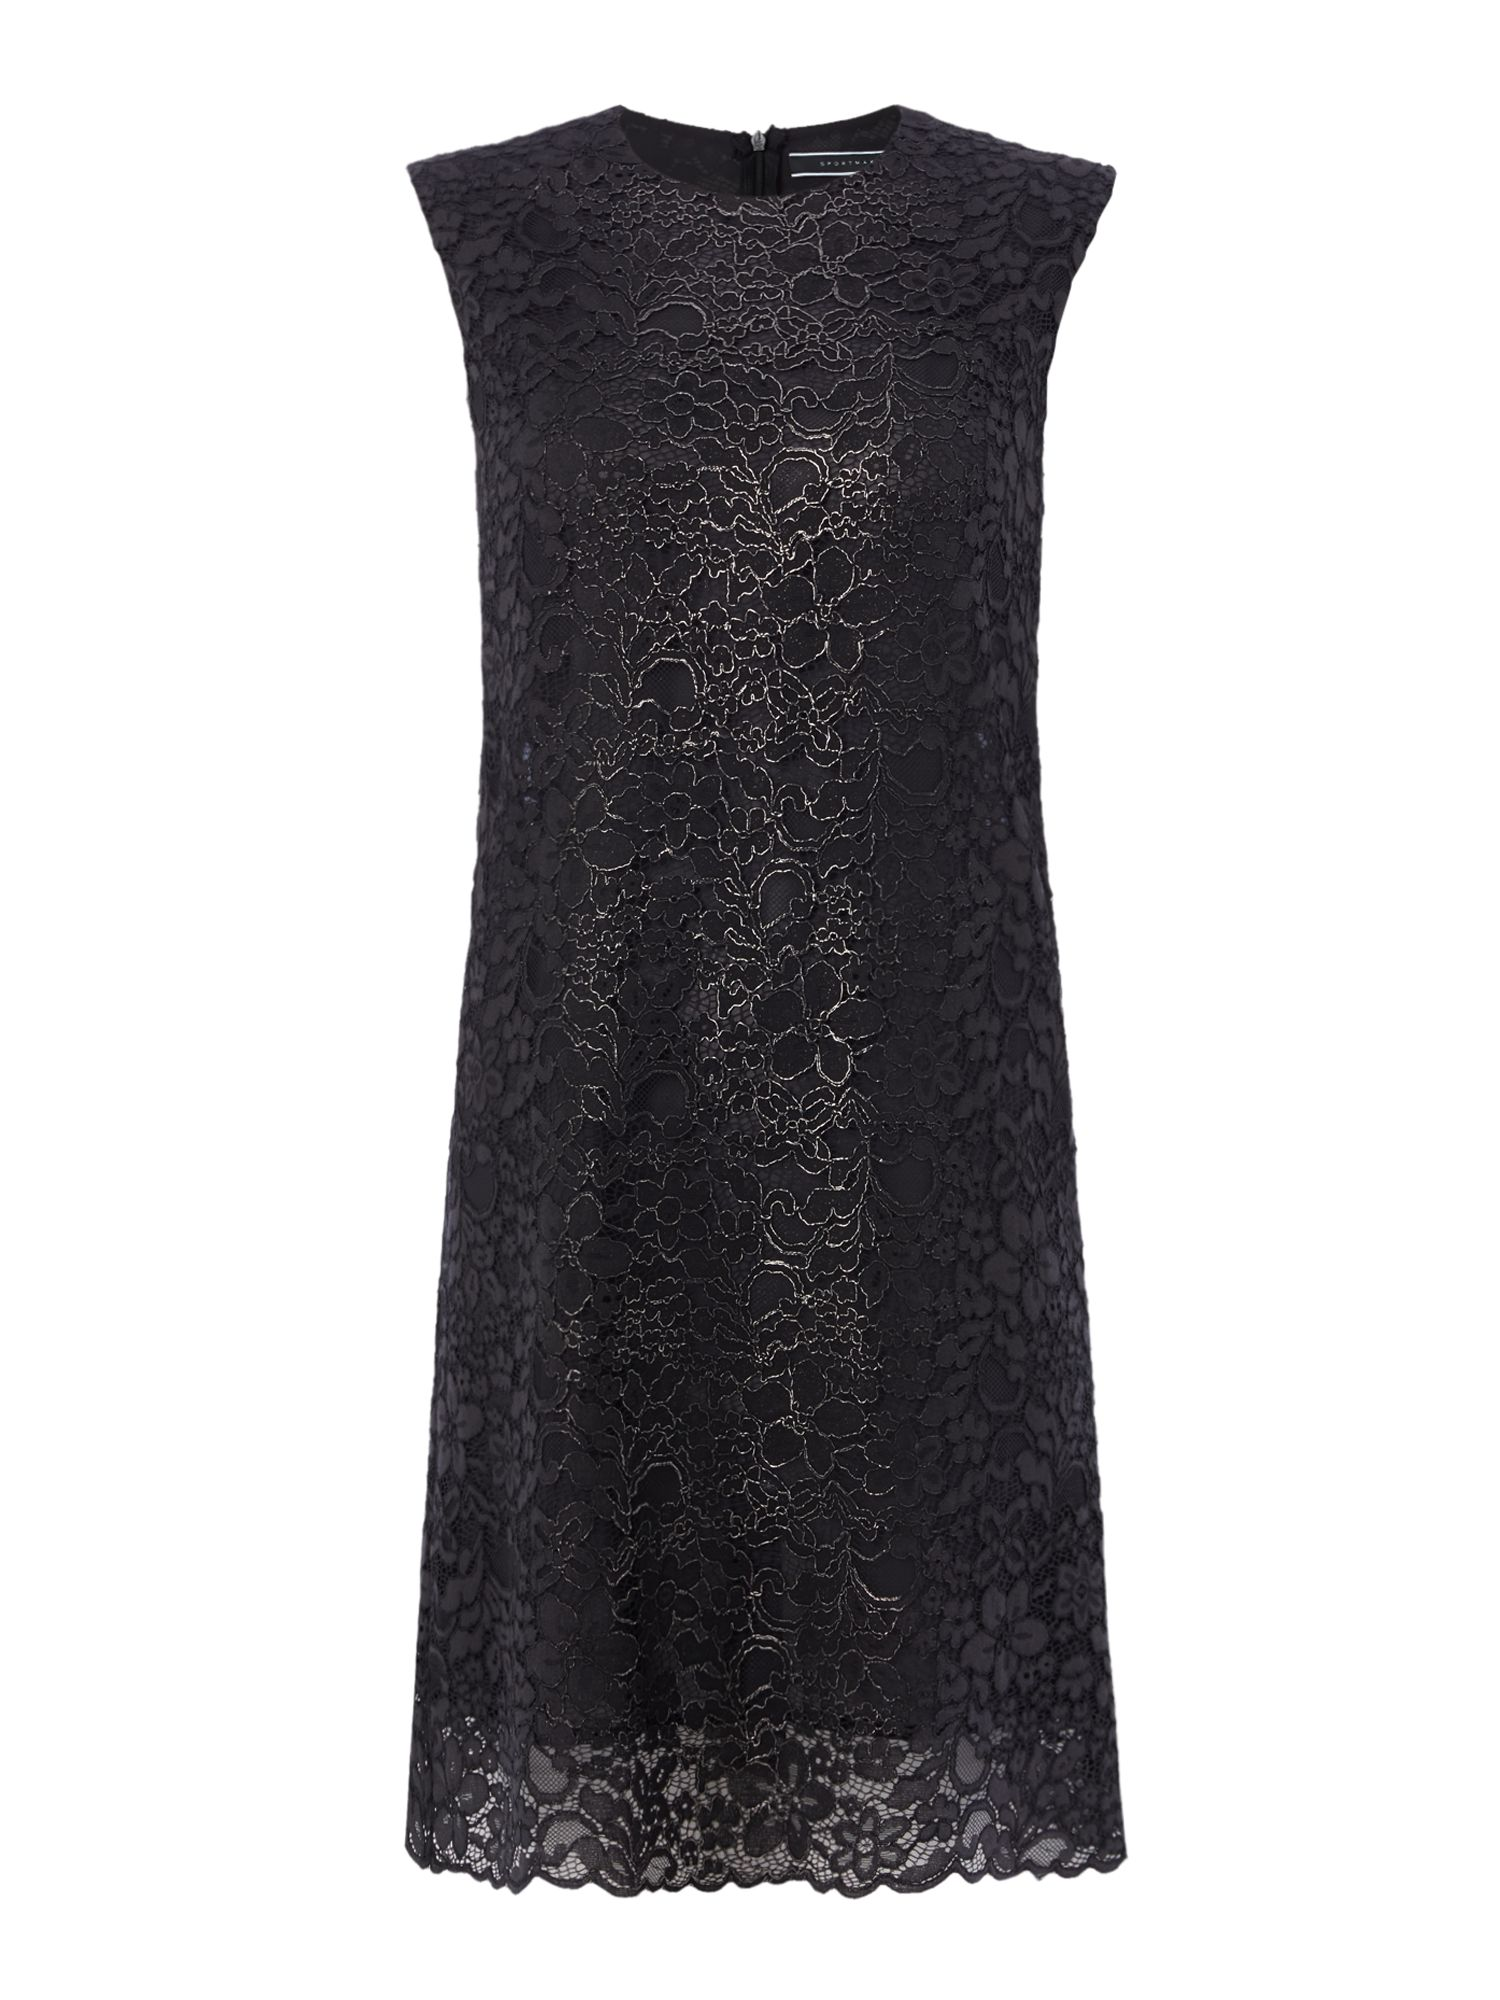 Sportmax Code Amiche metalic lace dress, Dark Grey